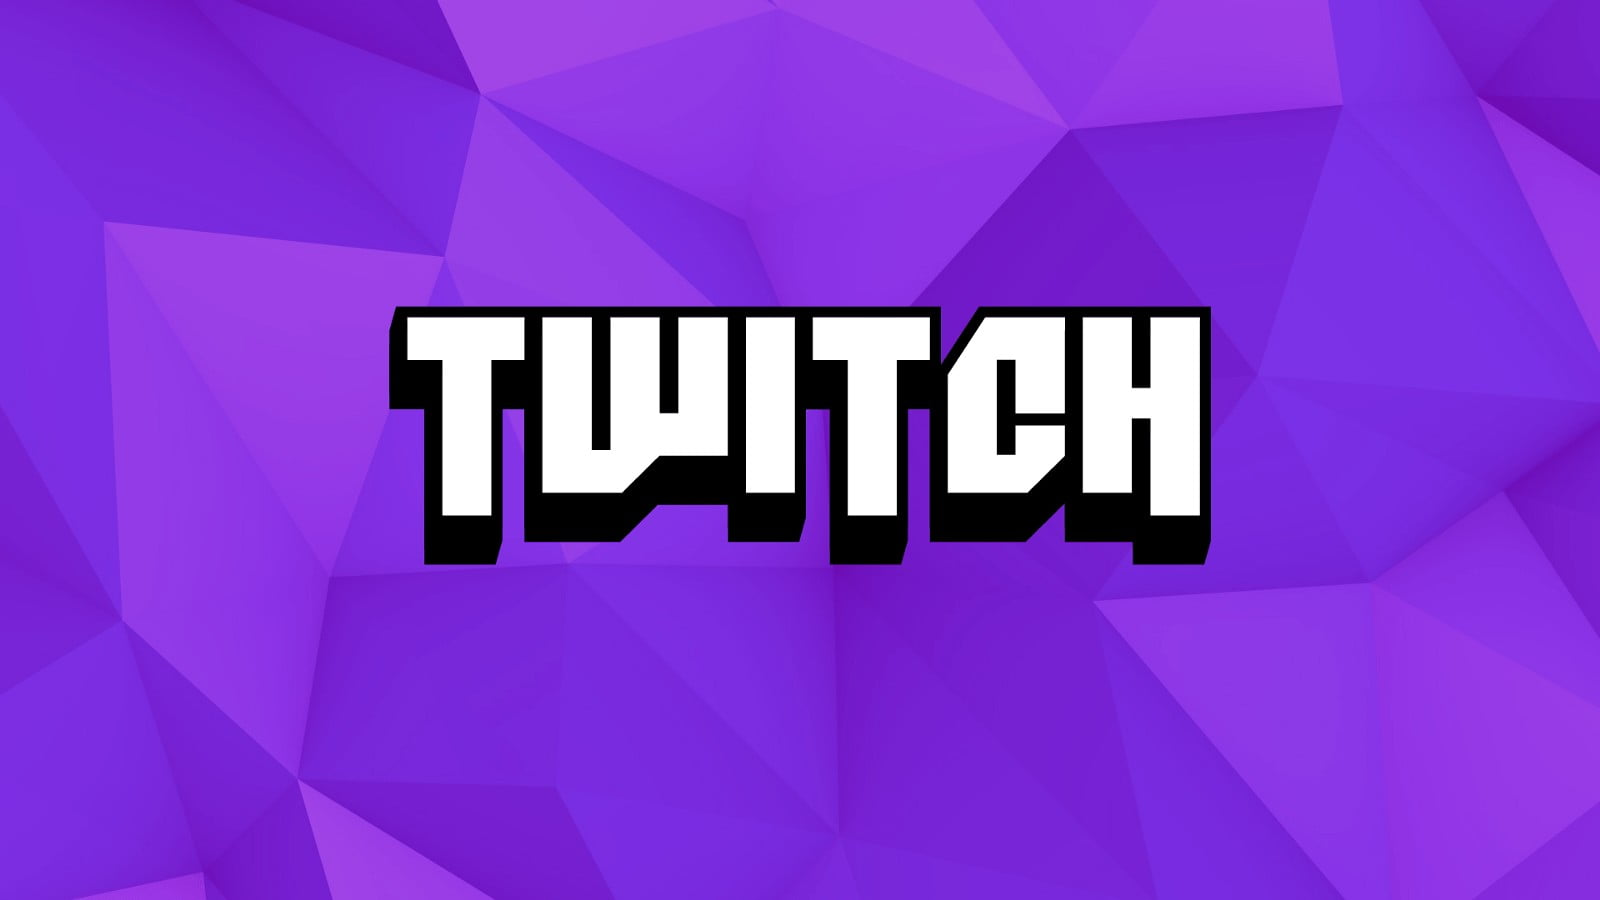 How to change your username on Twitch?